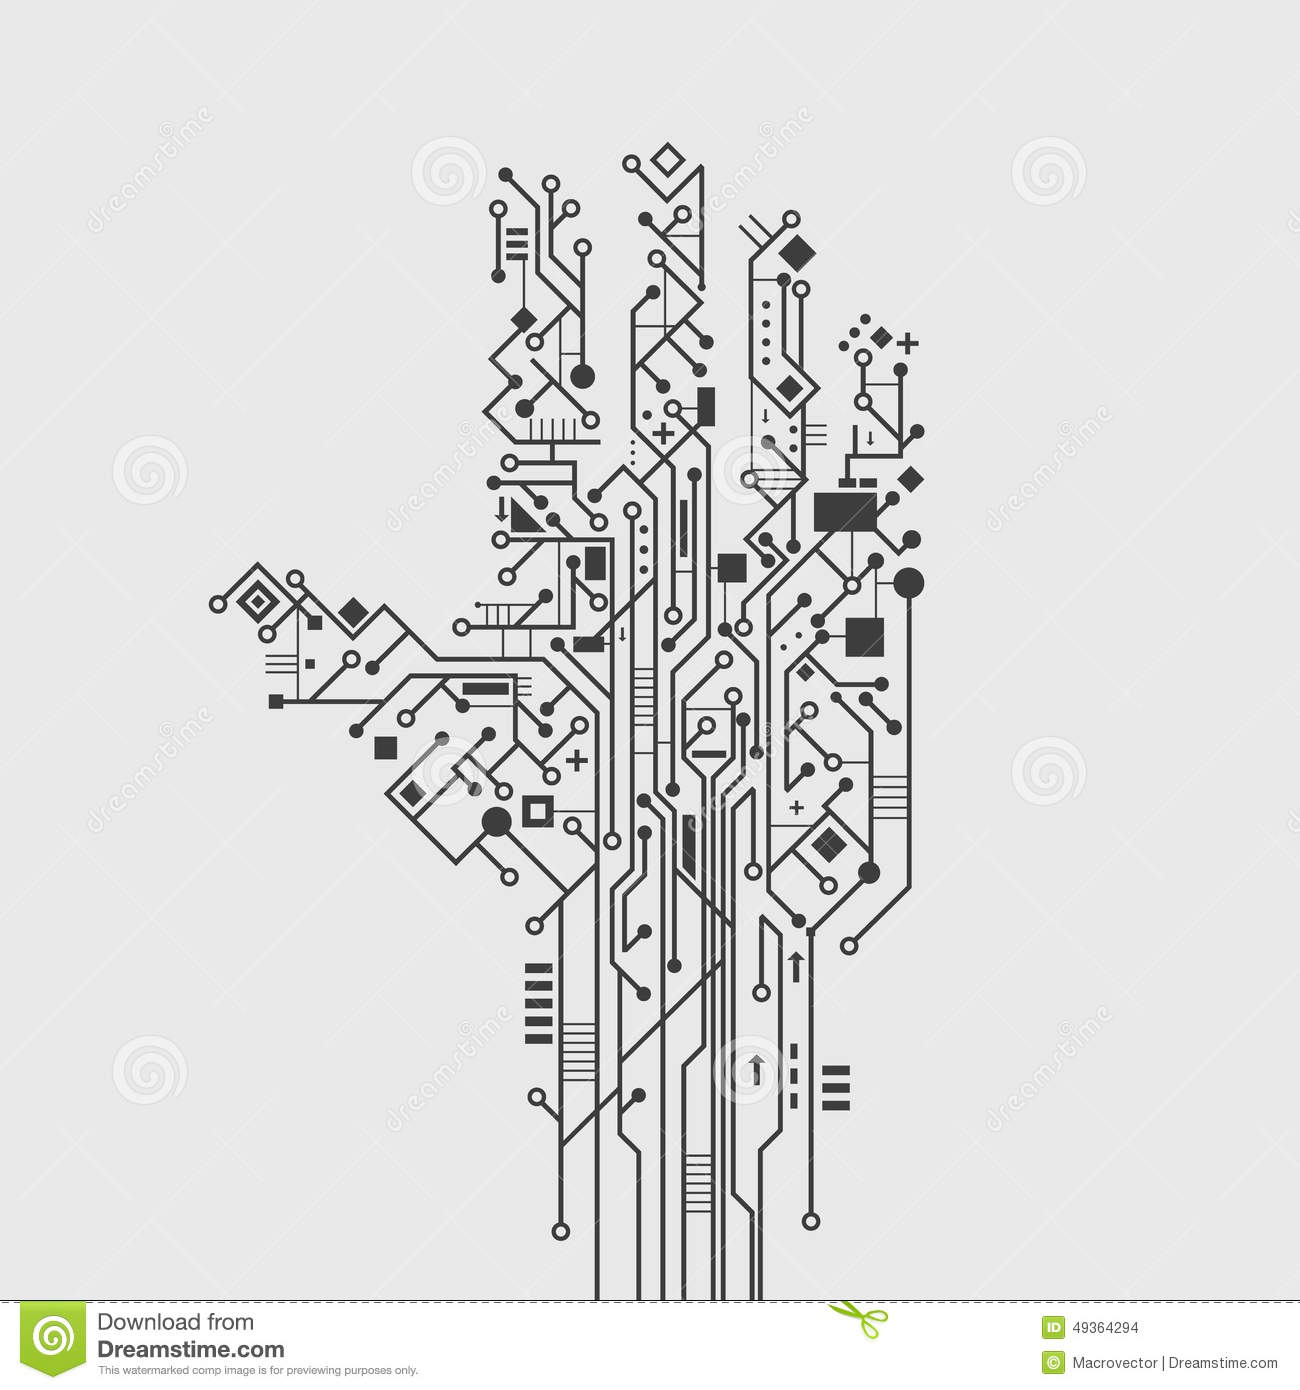 Electronic Schematic Wallpaper